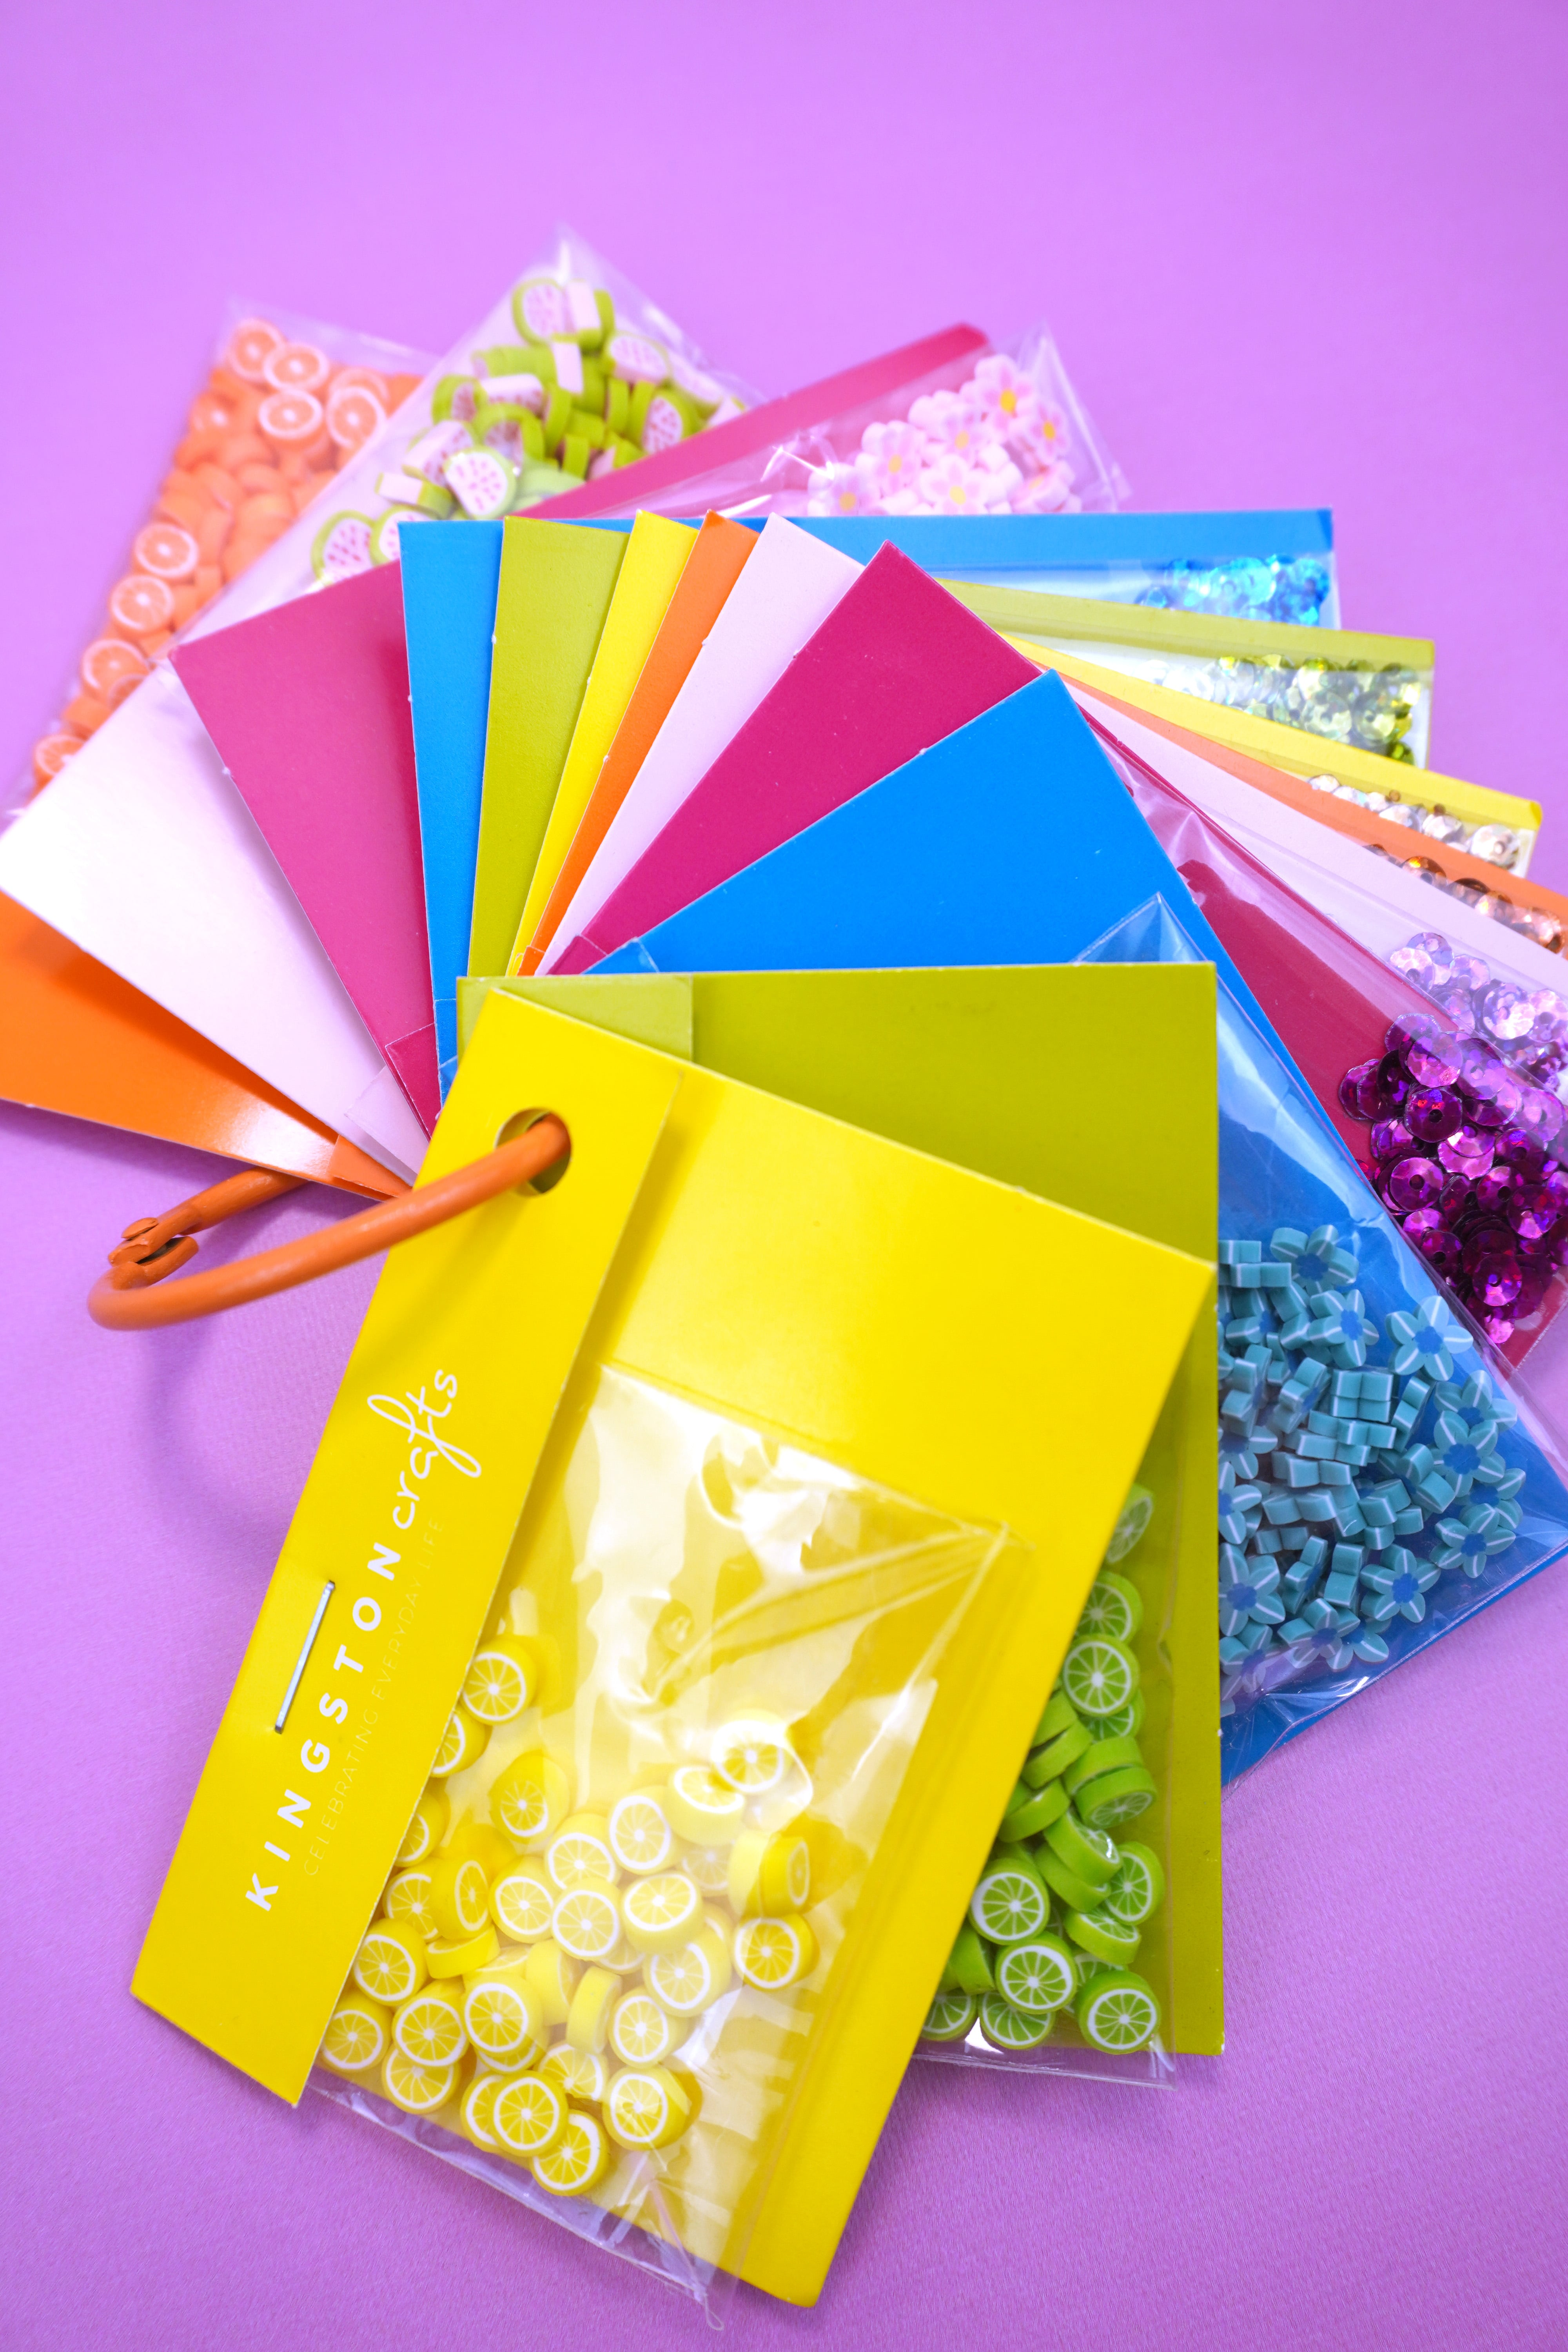 Kingston Crafts shaker embellishment set in colorful packages on purple background